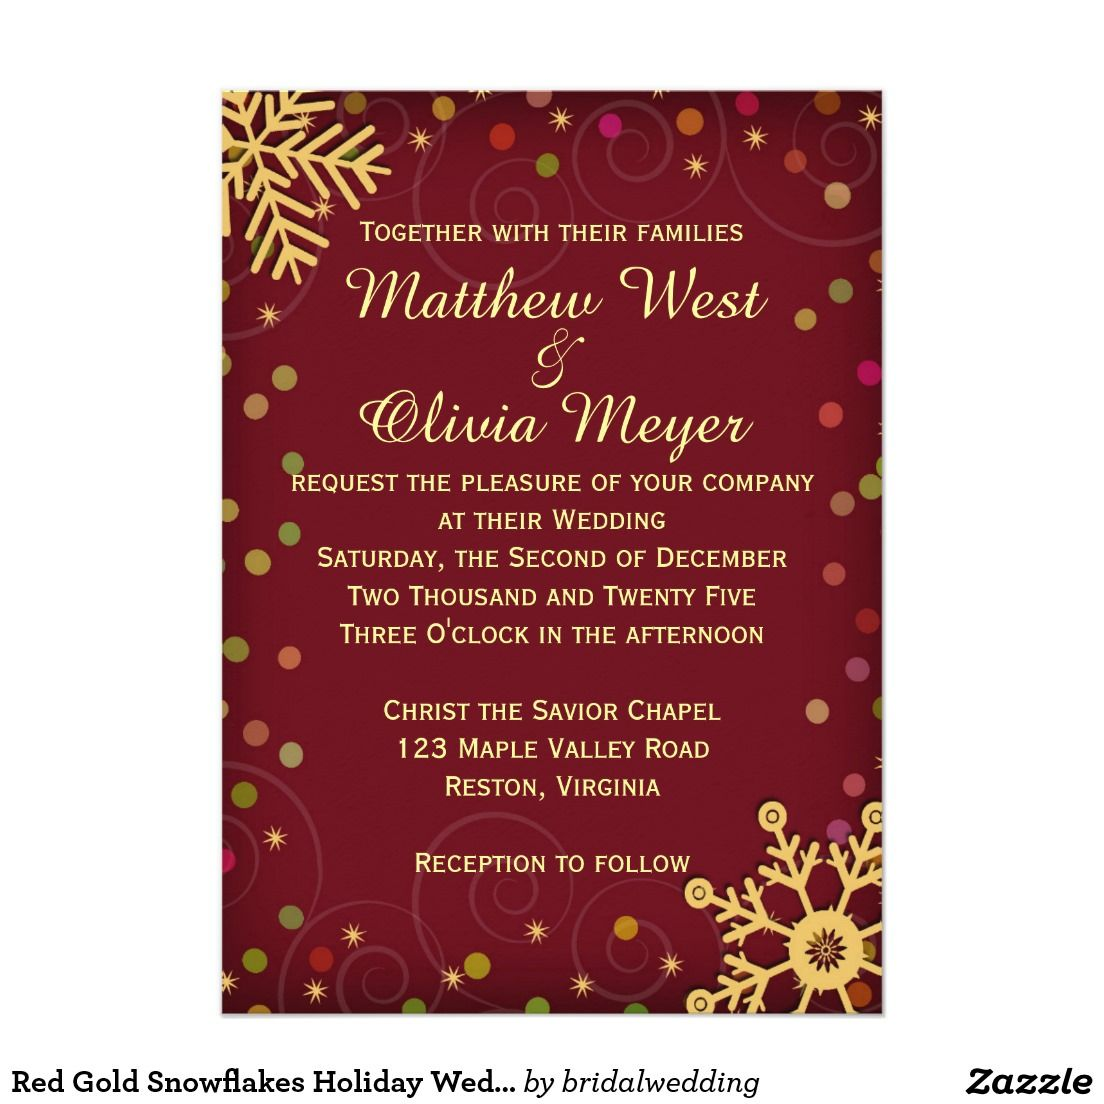 Red Gold Snowflakes Holiday Wedding Invitation | Red gold, Wedding ...